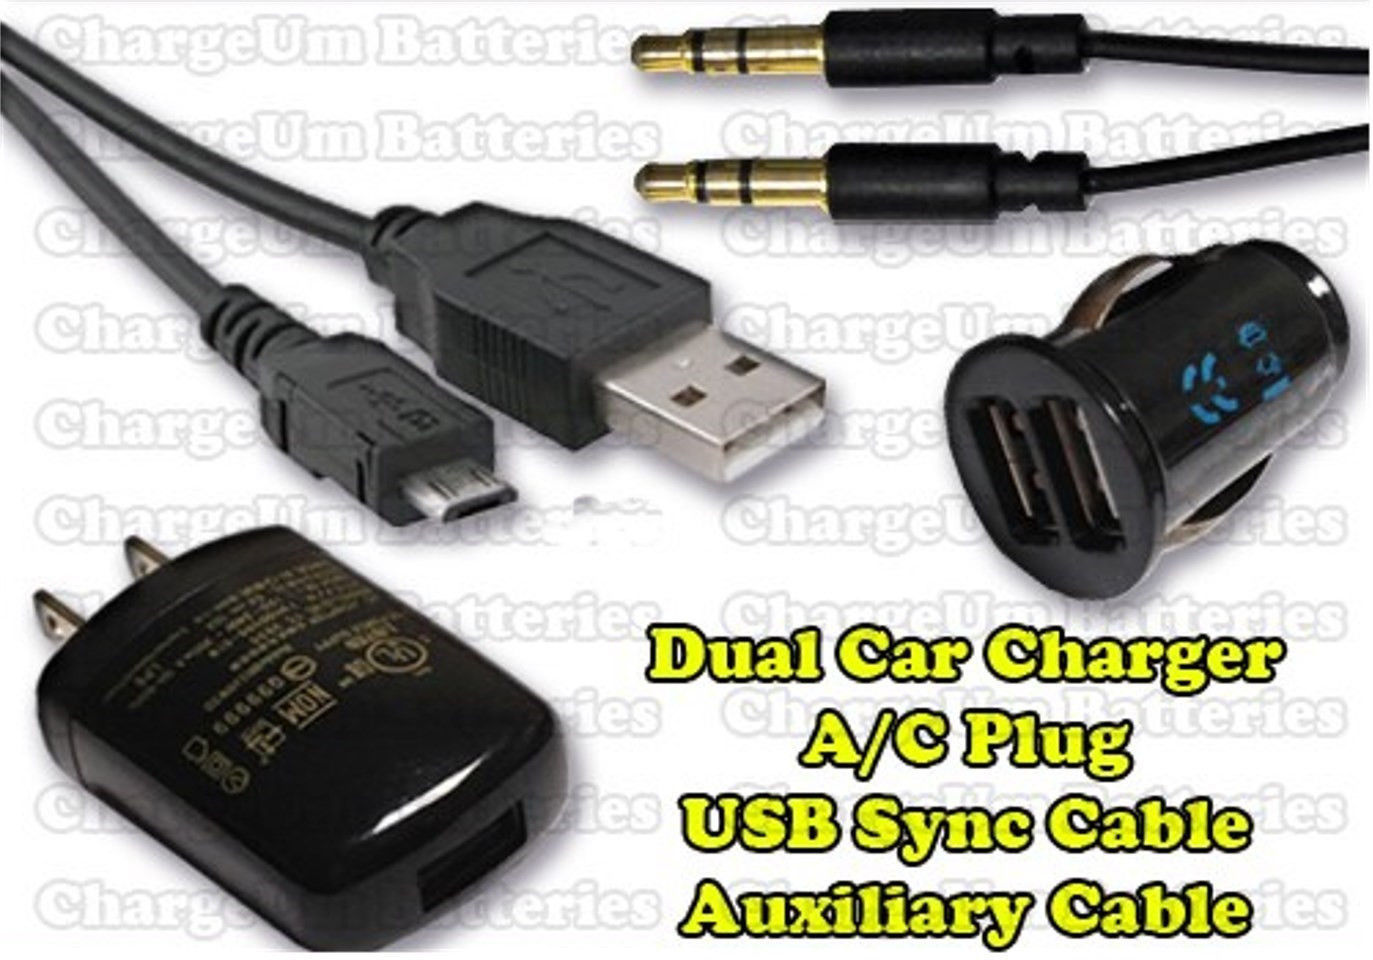 Samsung Stratosphere 1405 USB Cable + Auxiliary Cord + Dual Car Charger + Plug